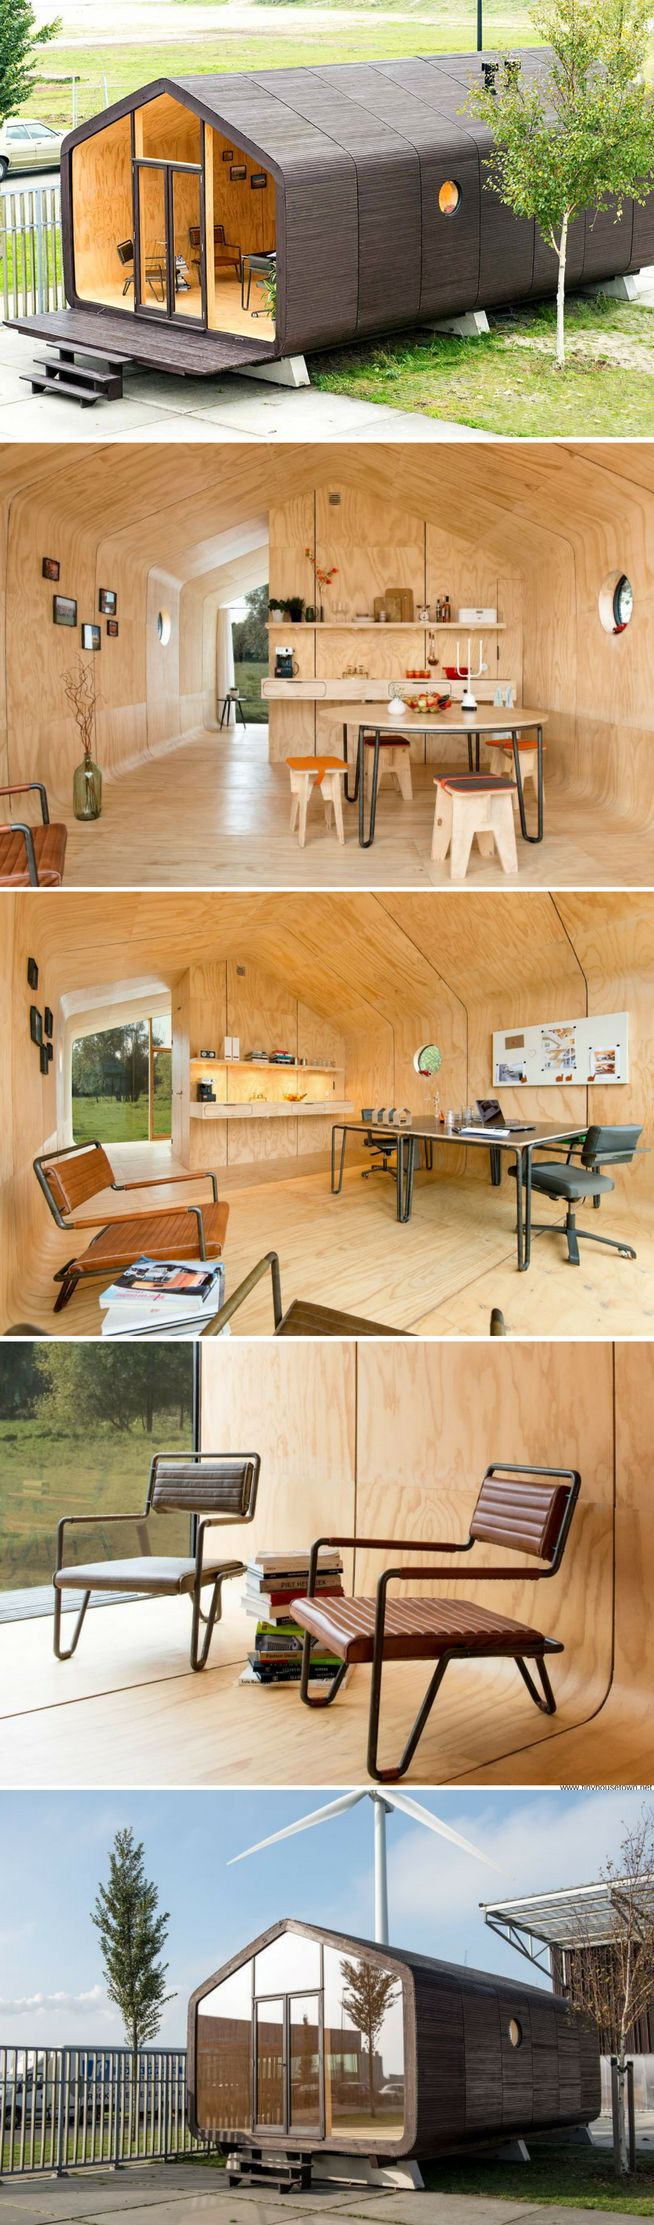 best 25 modular homes ideas on pinterest small modular homes best 25 modular homes ideas on pinterest small modular homes modular home floor plans and country modular homes